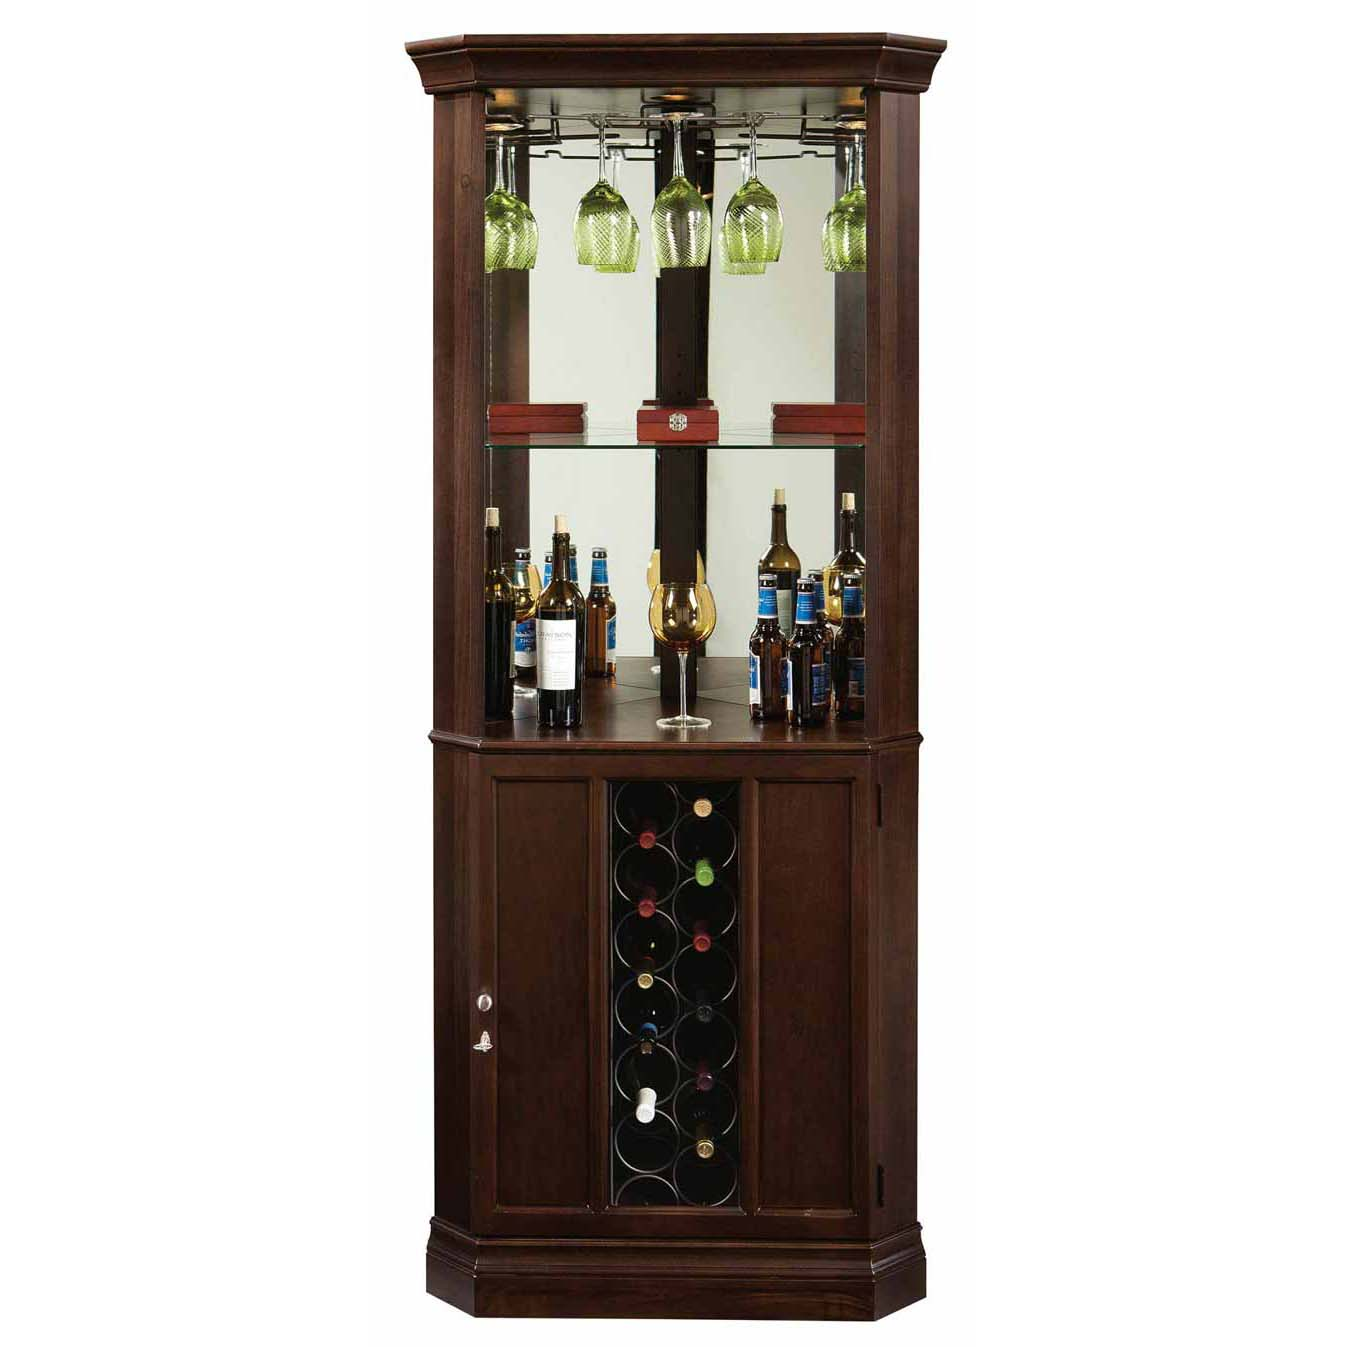 Cabinets For Home Bar: Howard Miller 690-007 Piedmont III Wine & Spirits Cabinet